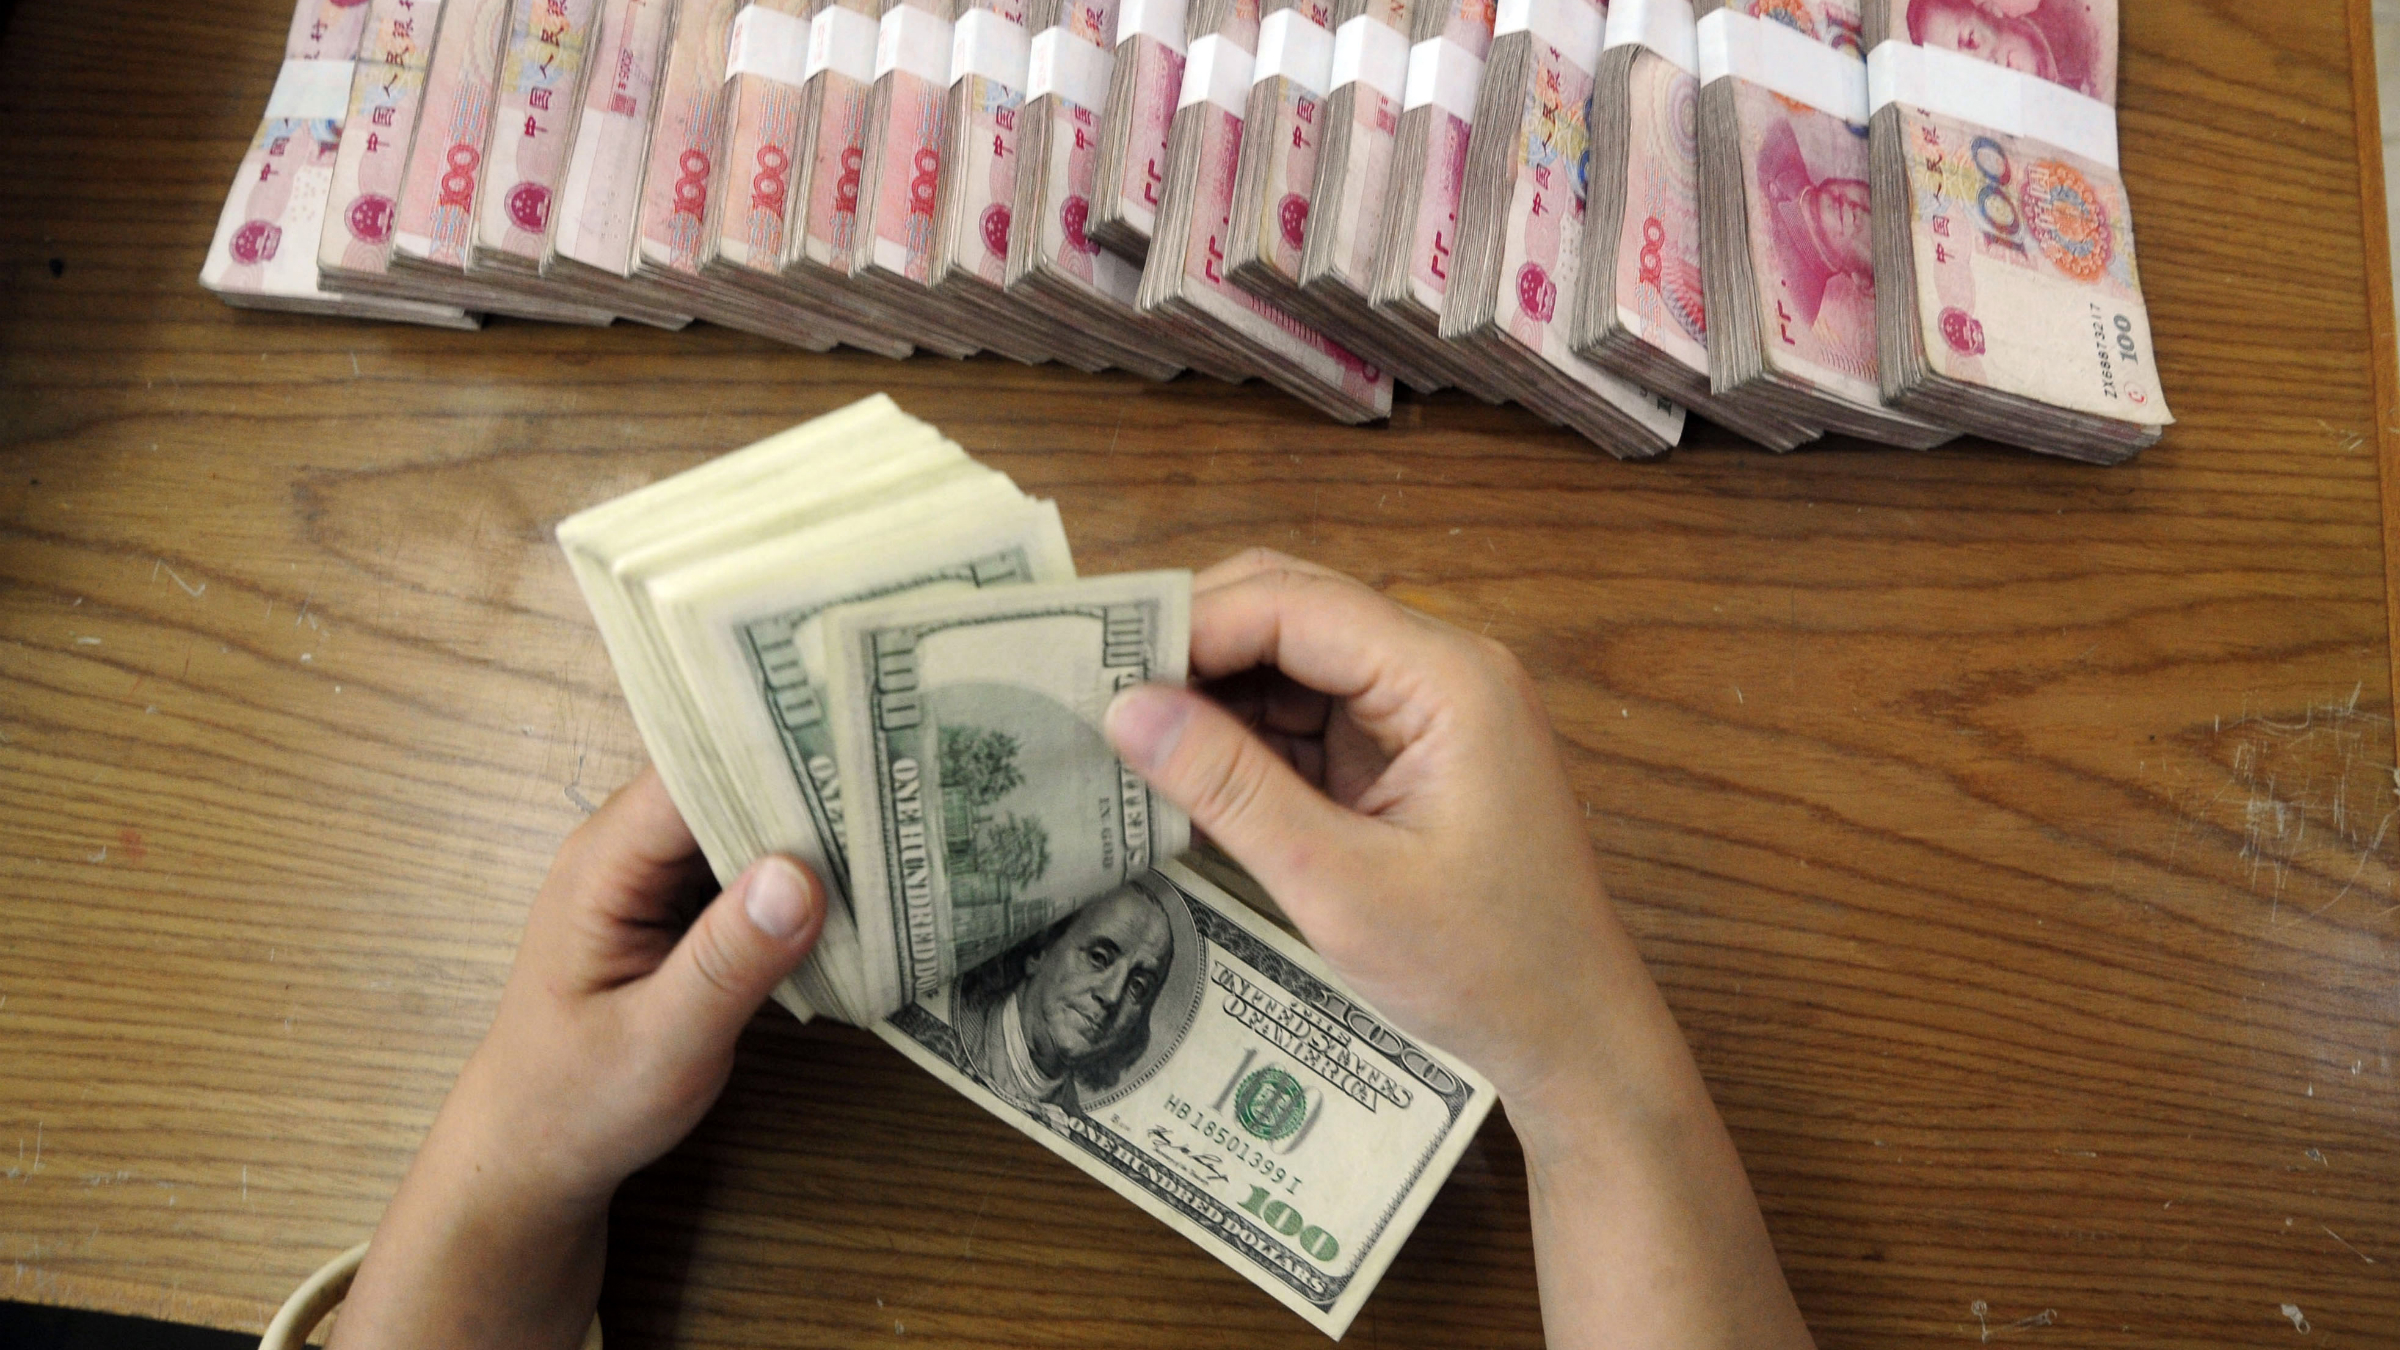 An employee counts U.S. dollar banknotes at a Bank of China branch in Hefei, Anhui province October 16, 2009. China is not manipulating its currency but is piling up foreign exchange reserves at a rate that threatens progress in reducing global economic imbalances, the U.S. Treasury Department said Thursday. REUTERS/Stringer